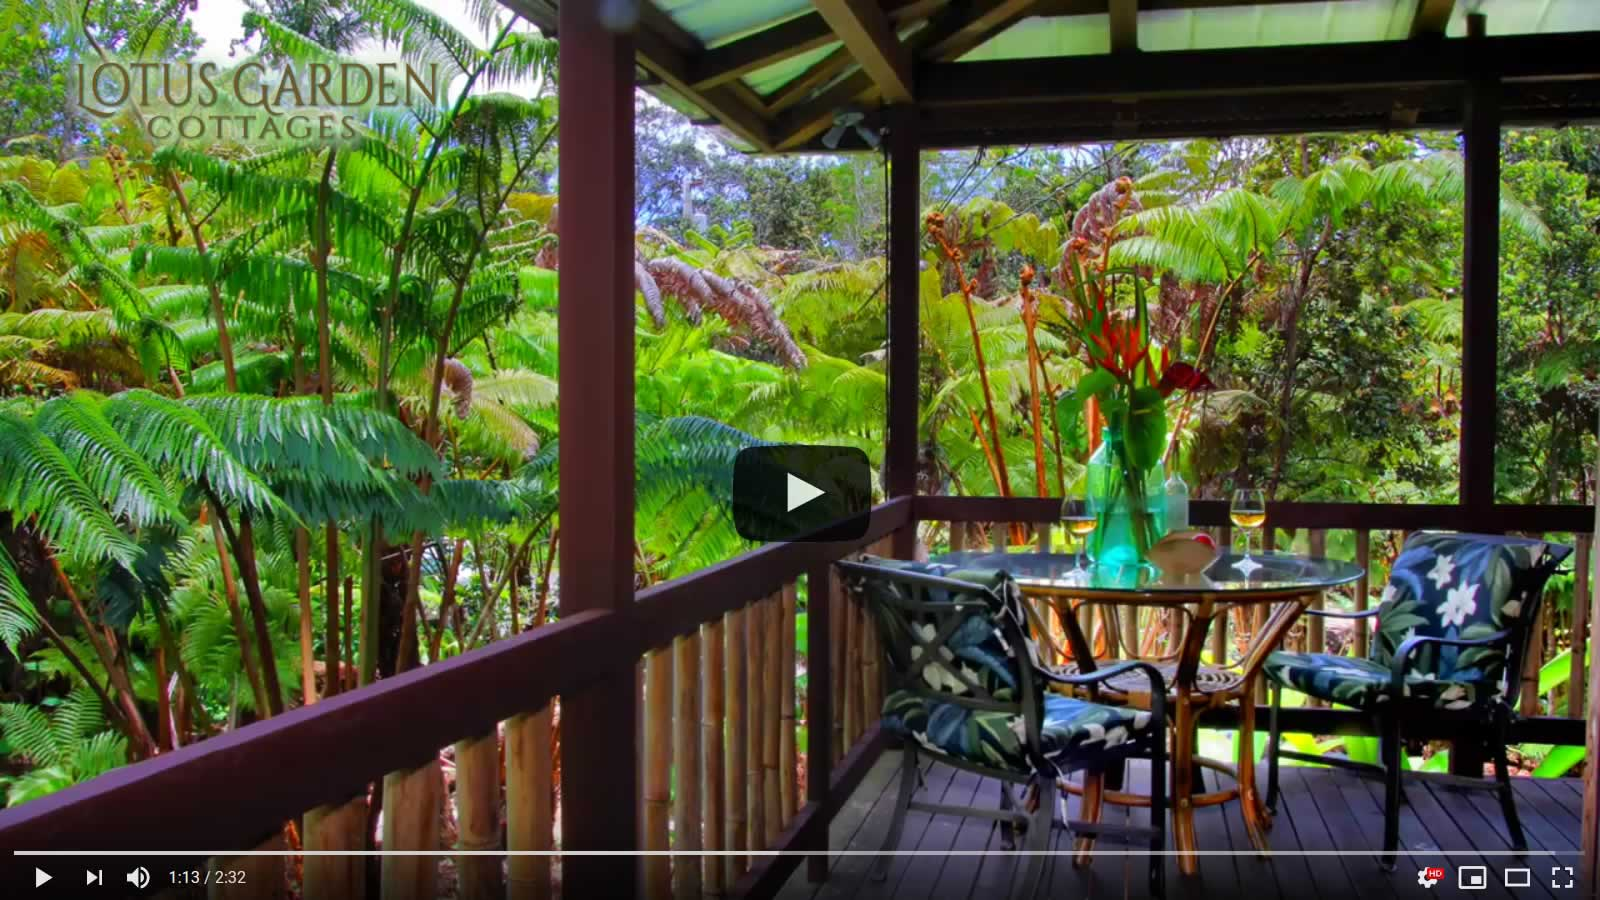 Lotus Garden Cottages Video